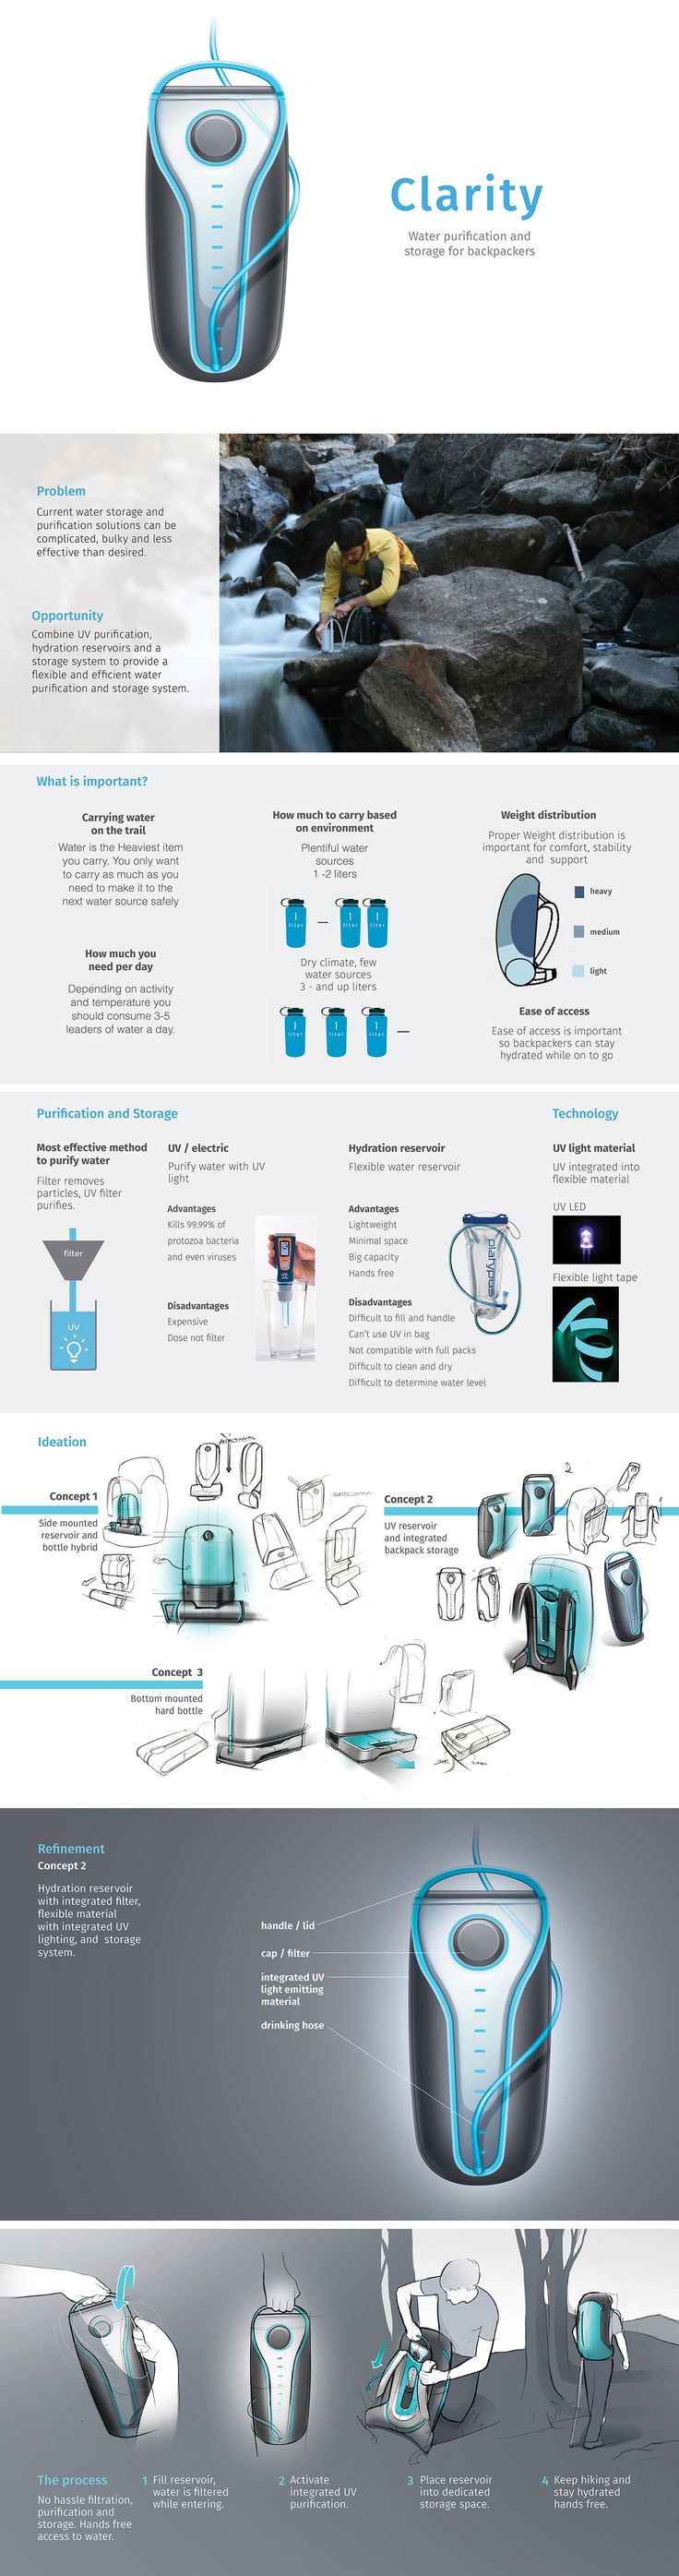 Clarity, water purification and stroage on Behance